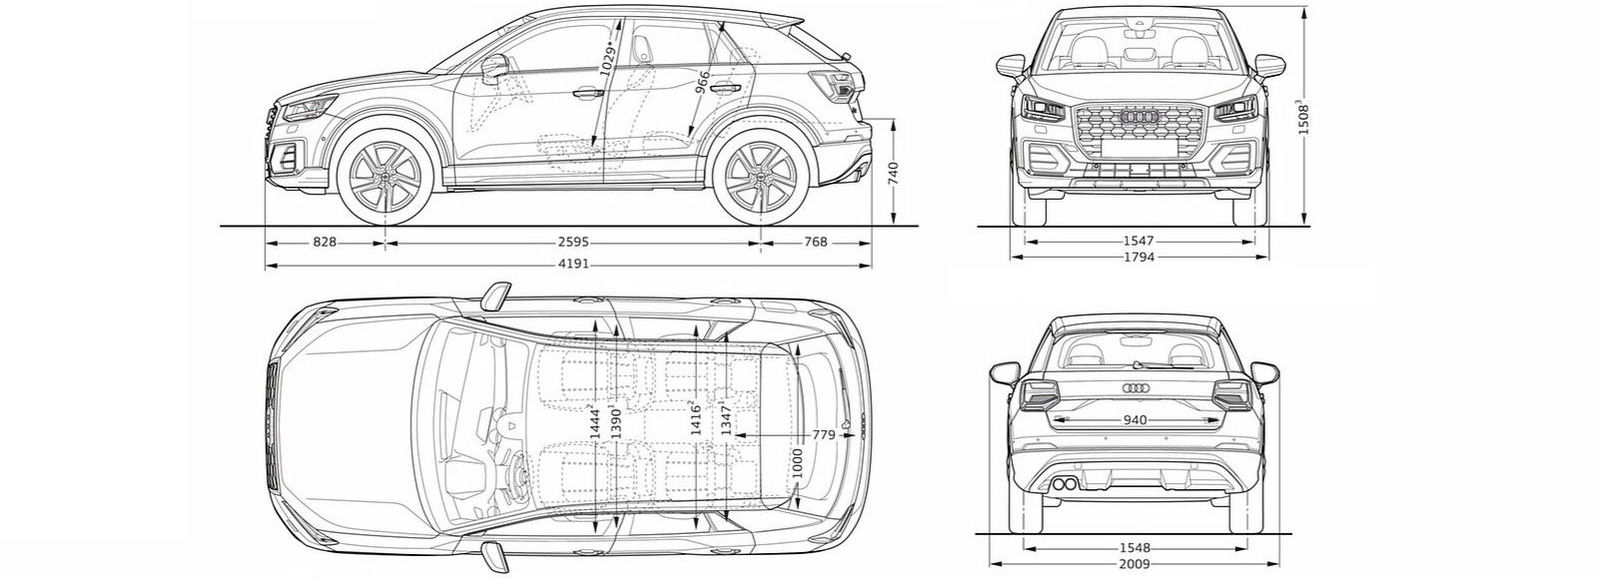 vw tiguan interior dimensions